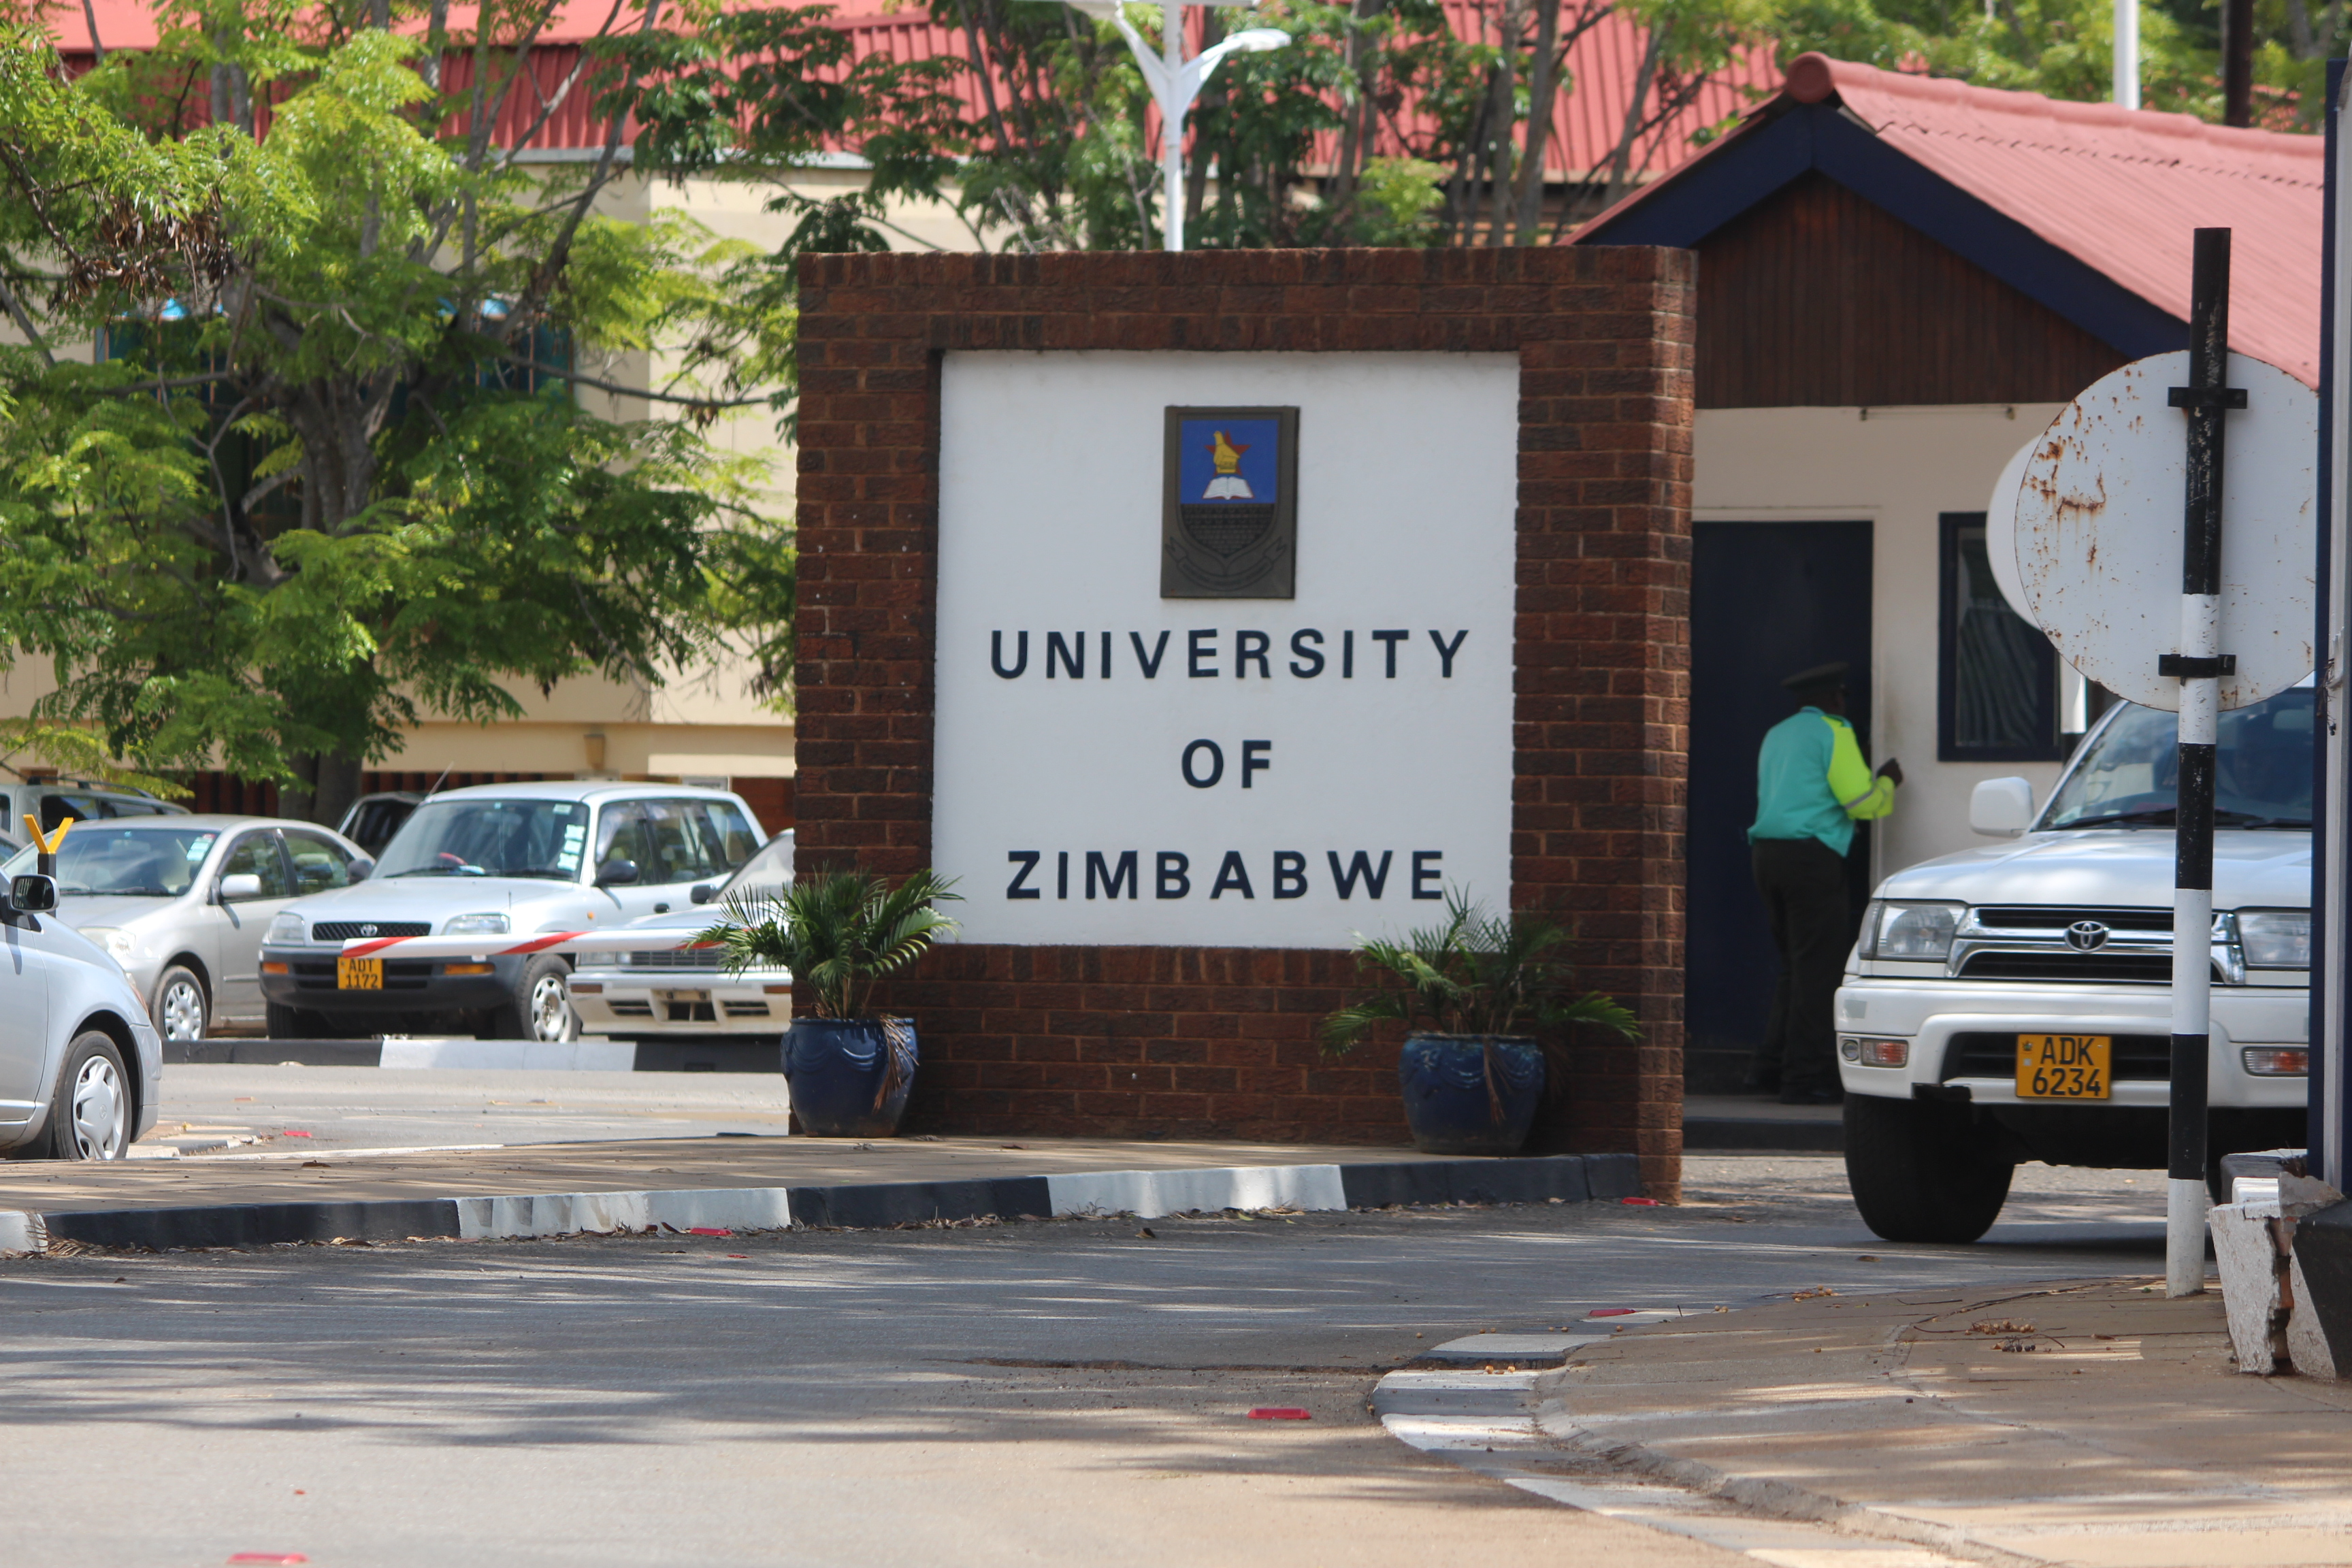 University of Zimbabwe (UZ)